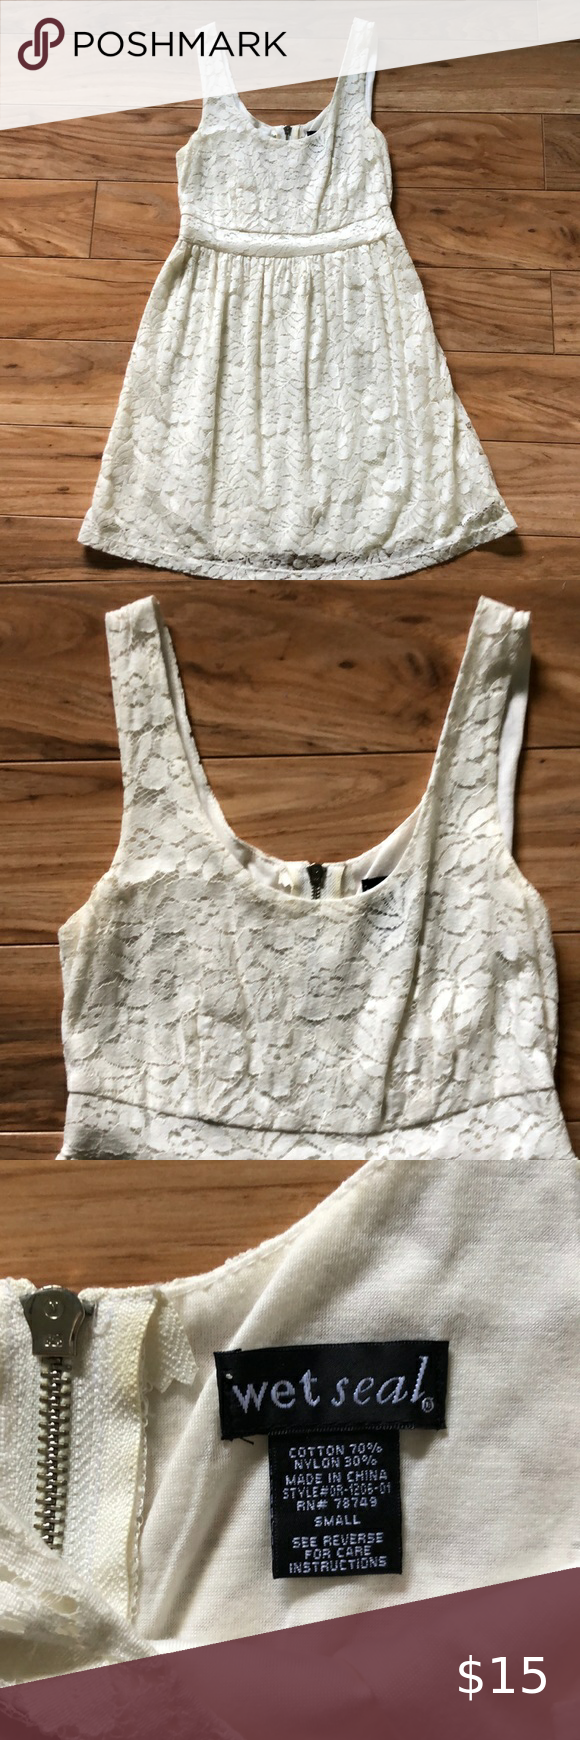 Wet Seal lace dress size small Wet Seal off white lined lace dress size small wi...